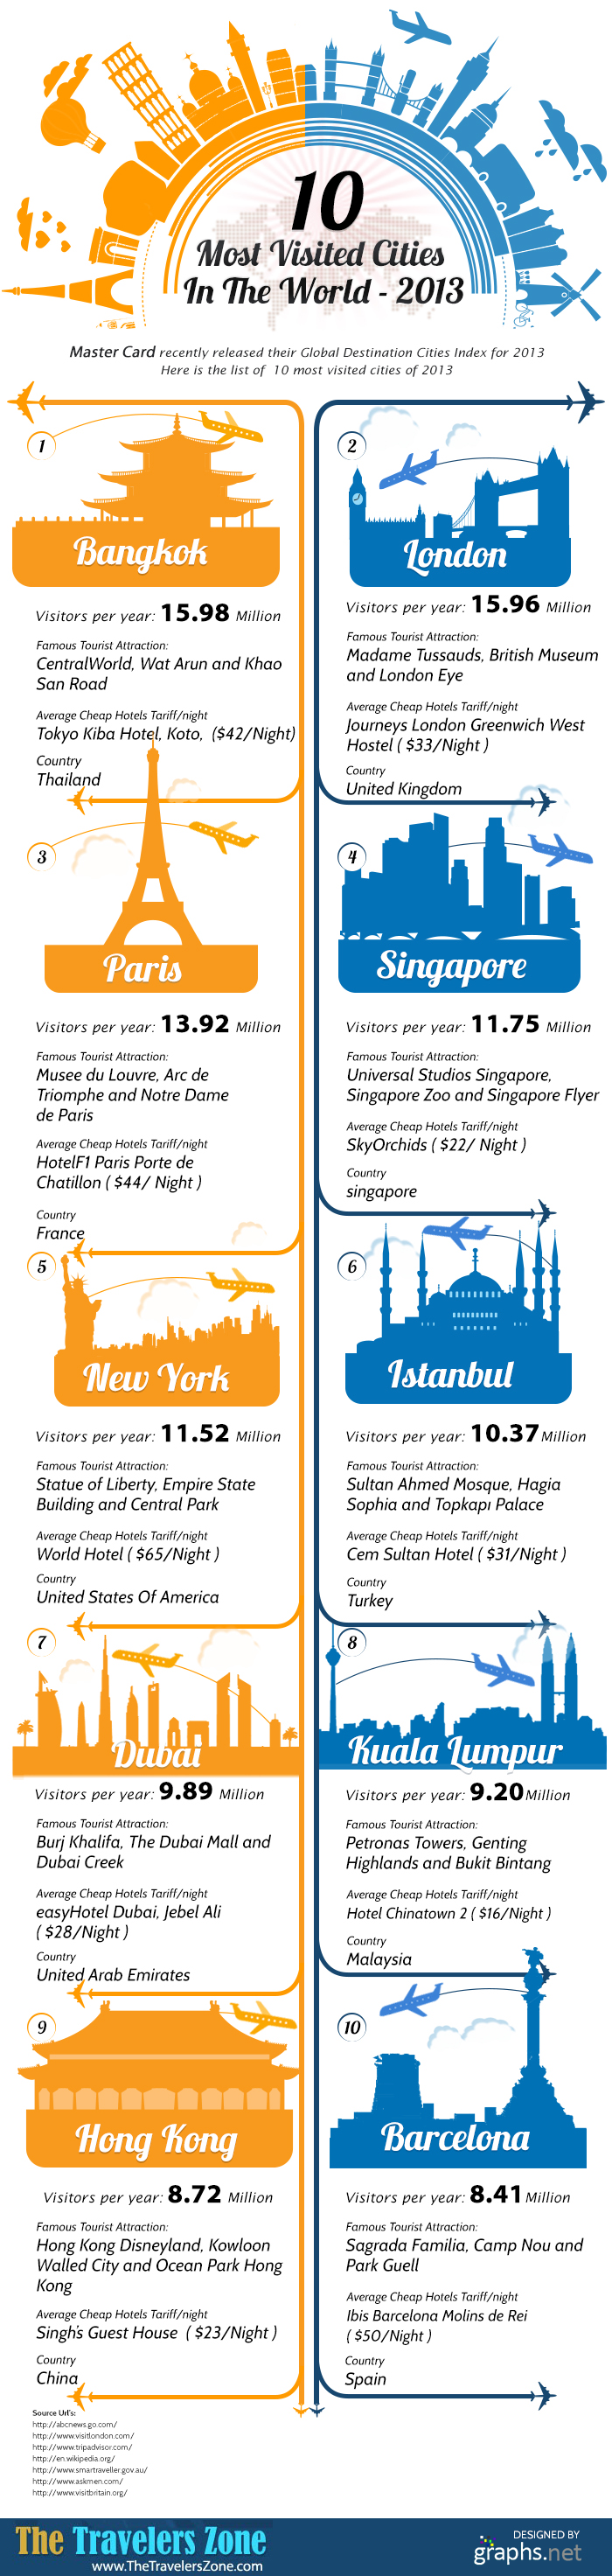 Infographic The 10 Most Visited Cities Of 2013